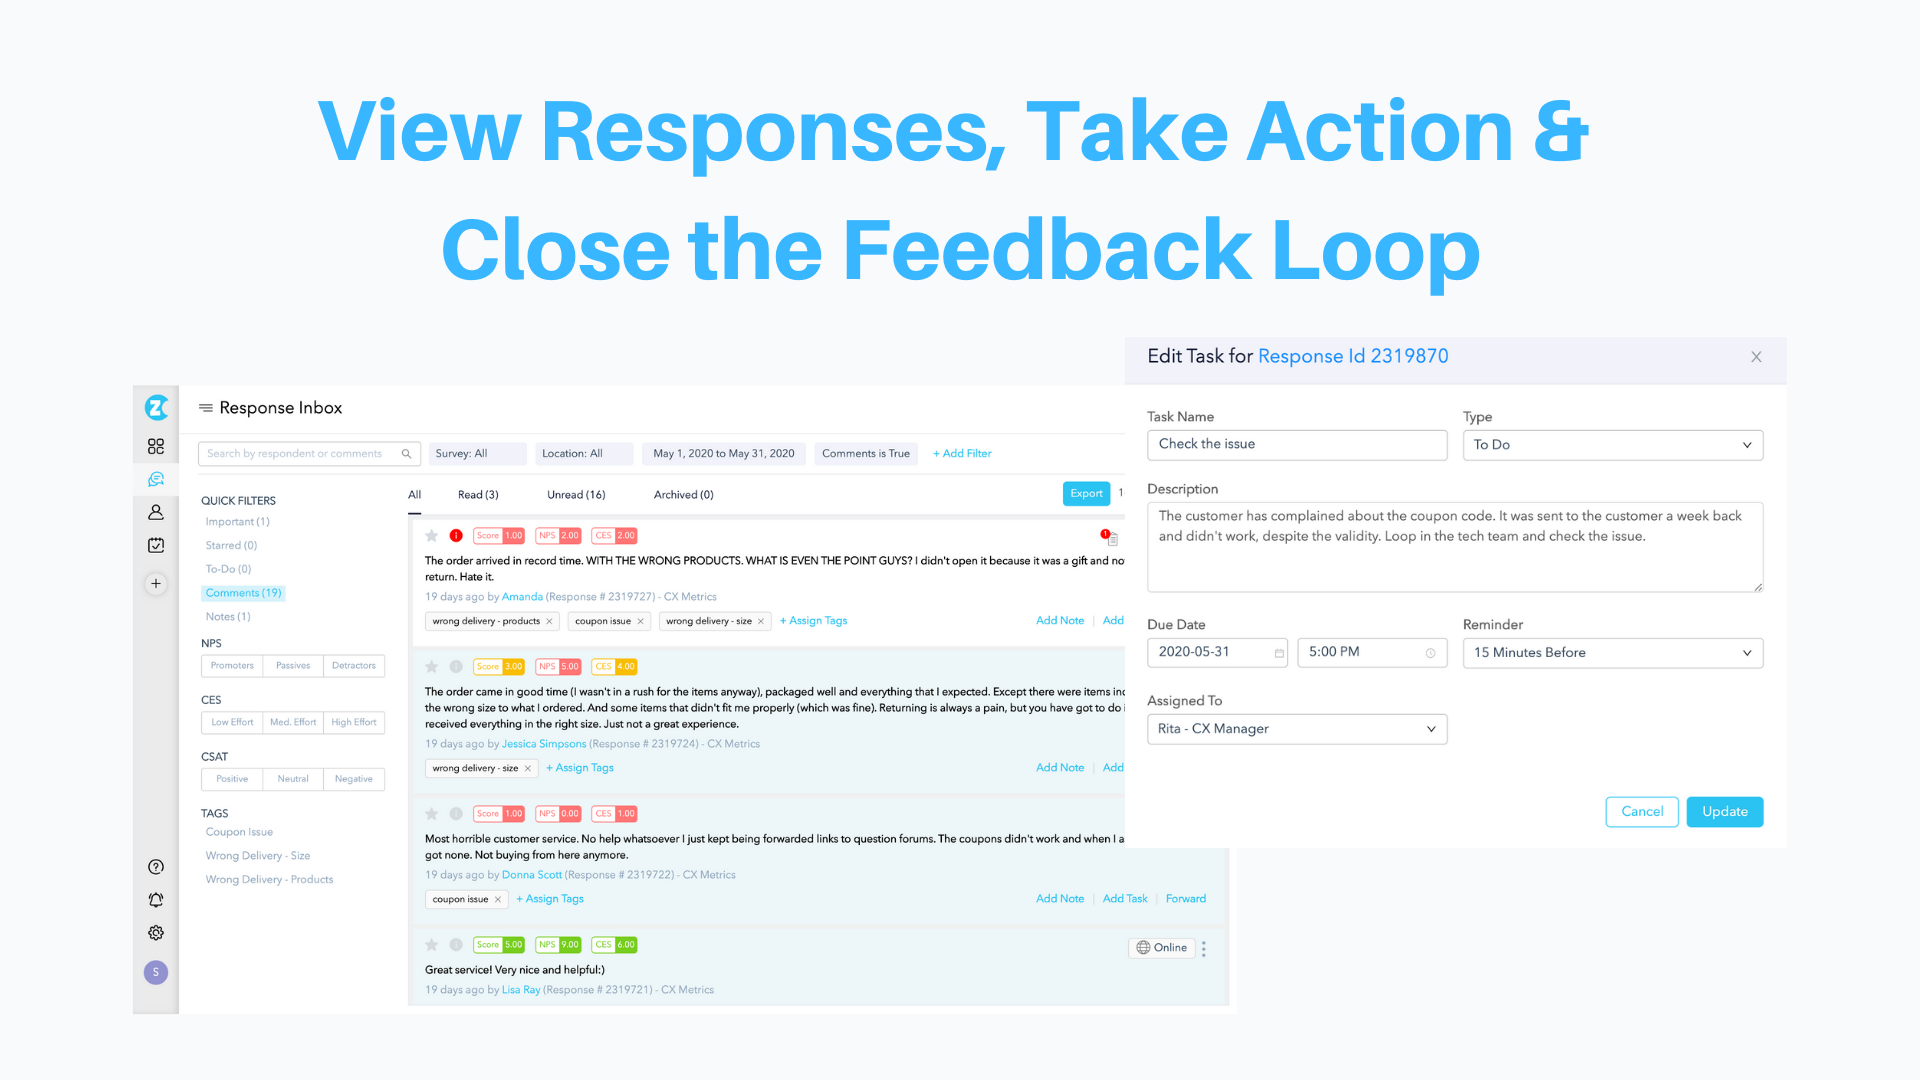 Take Action & Close the Feedback Loop